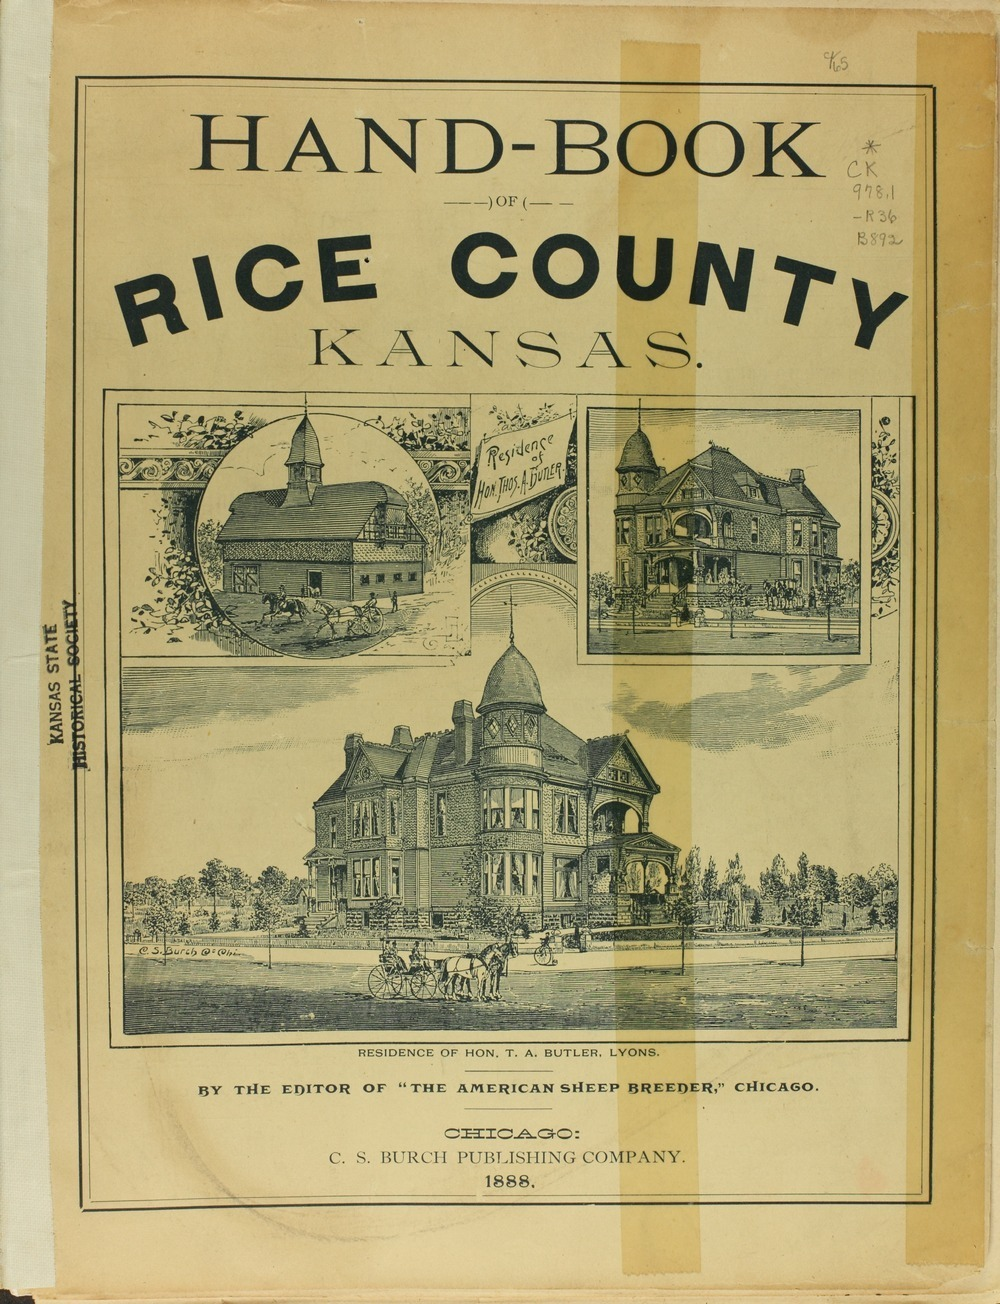 Hand-book of Rice County Kansas - Title Page